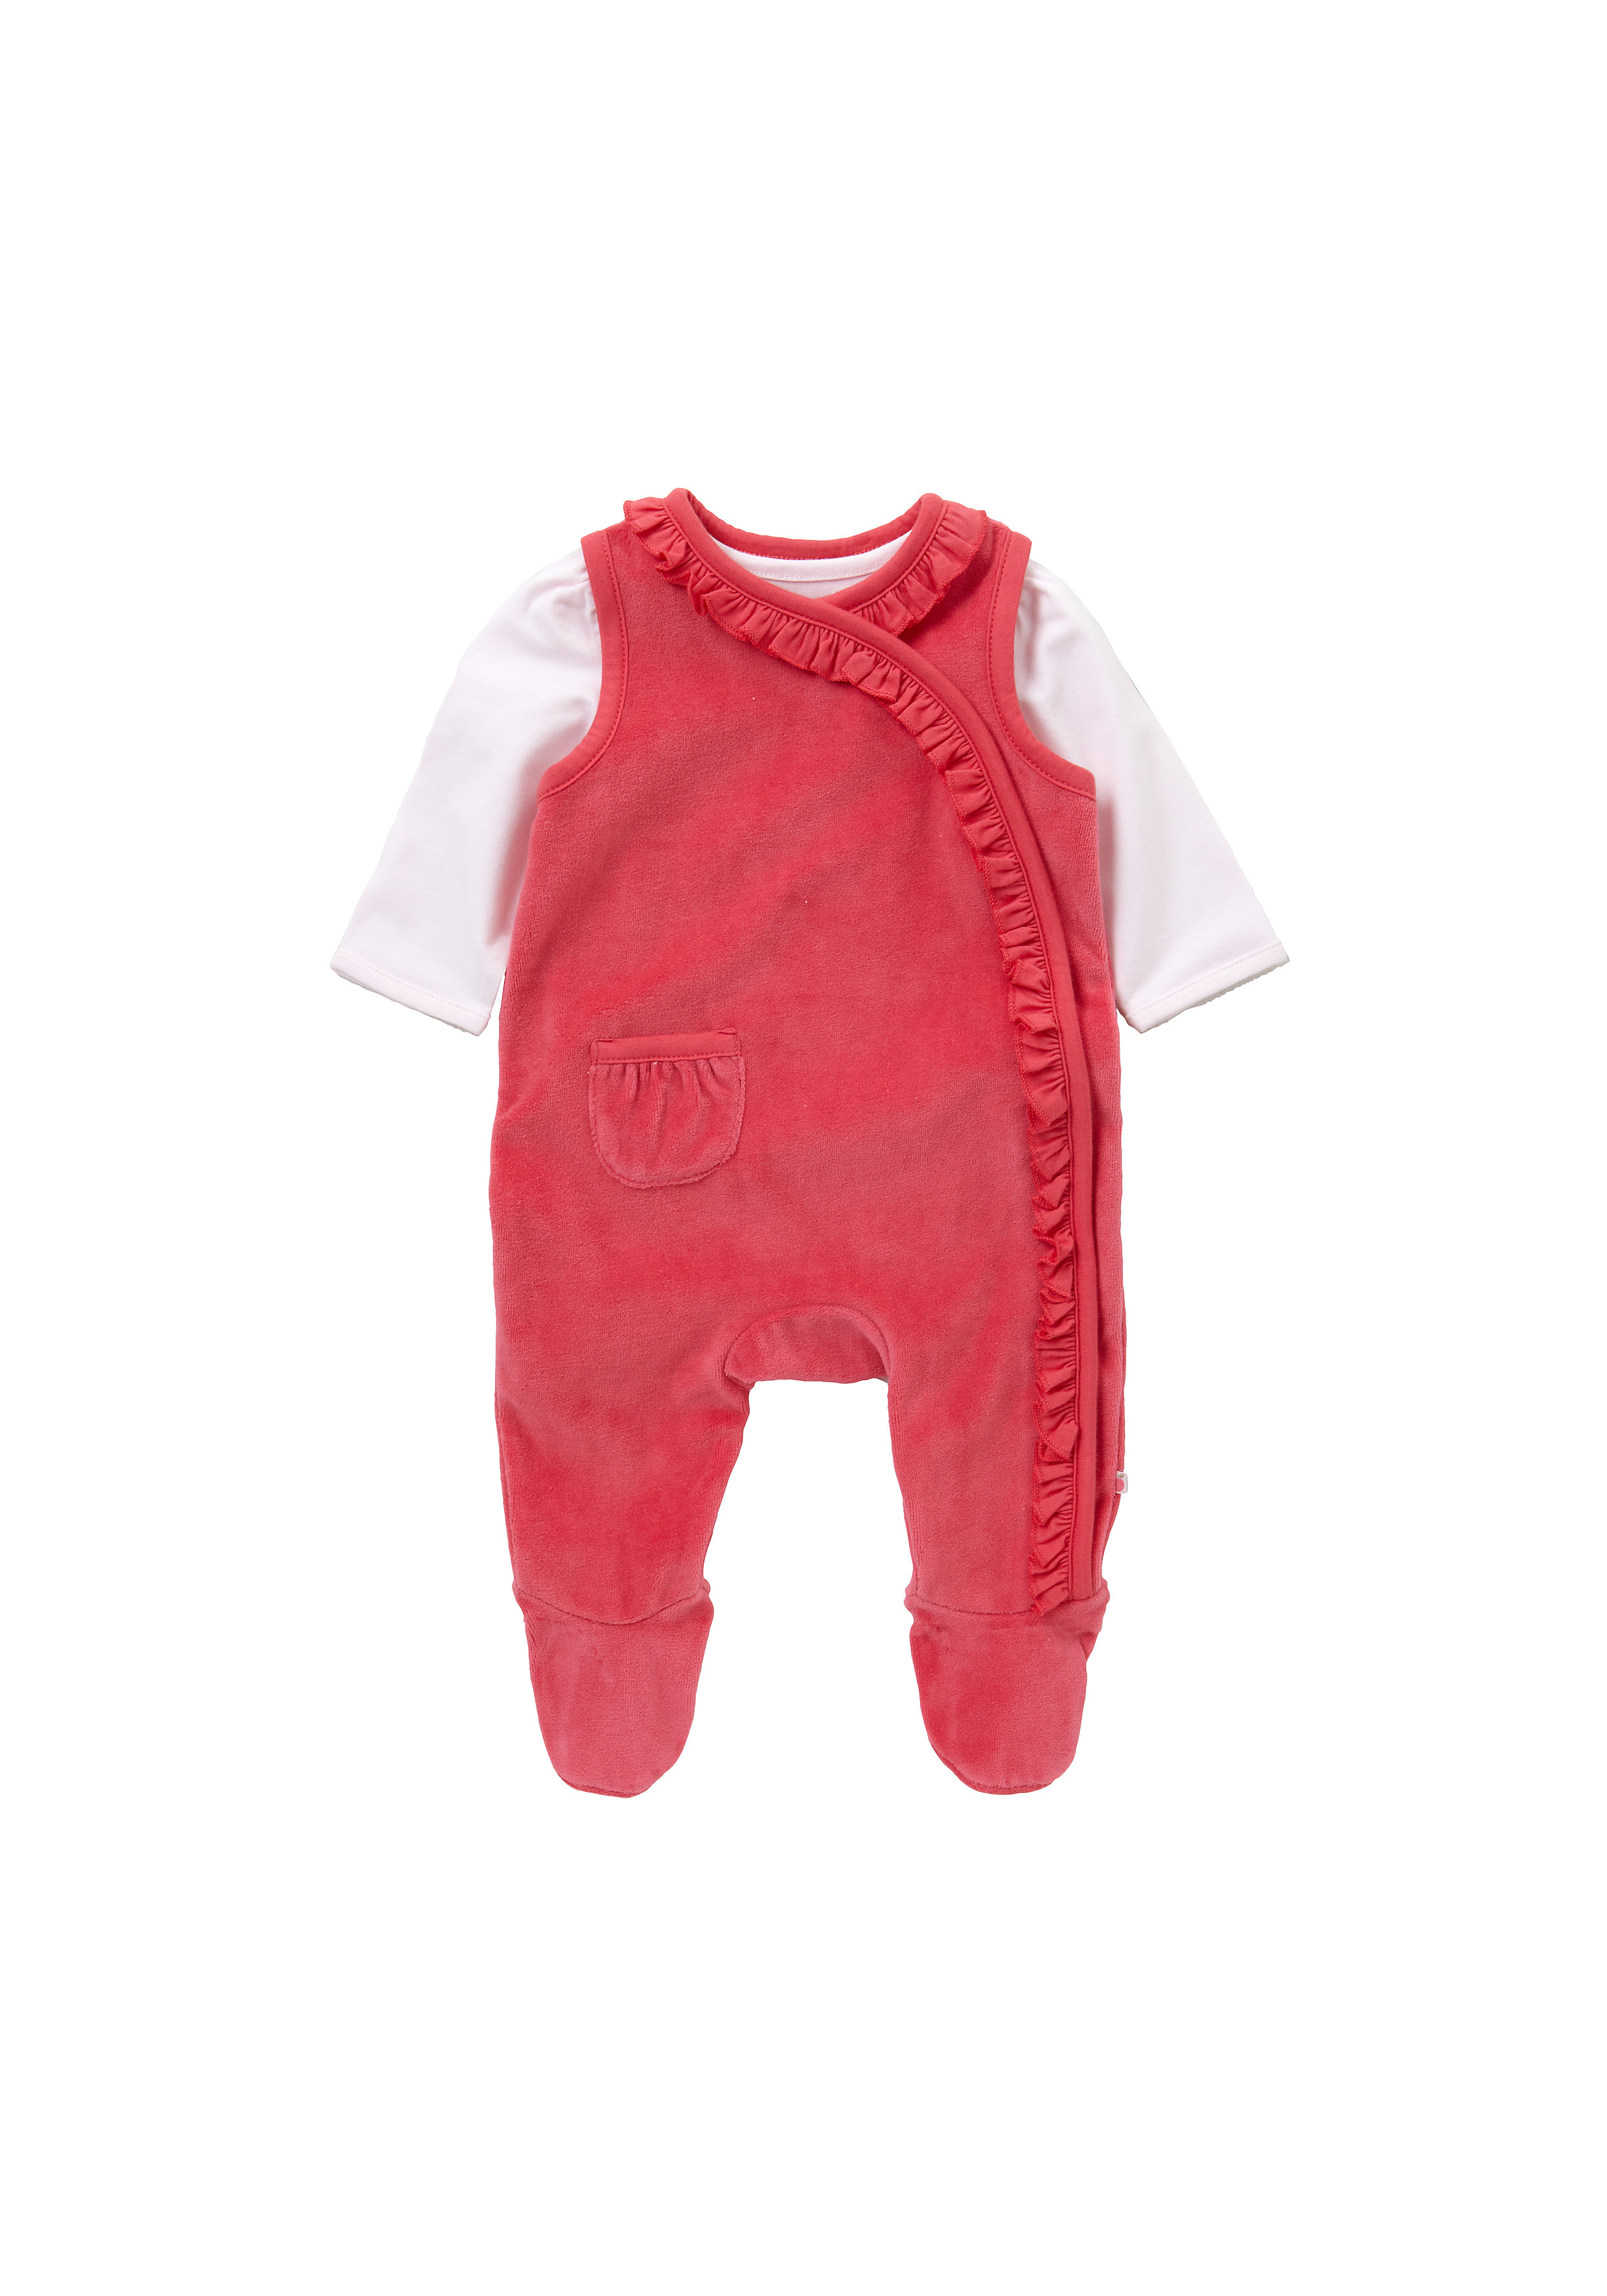 Mothercare | Girls Full Sleeves Dungaree Set Frill Detail - Red